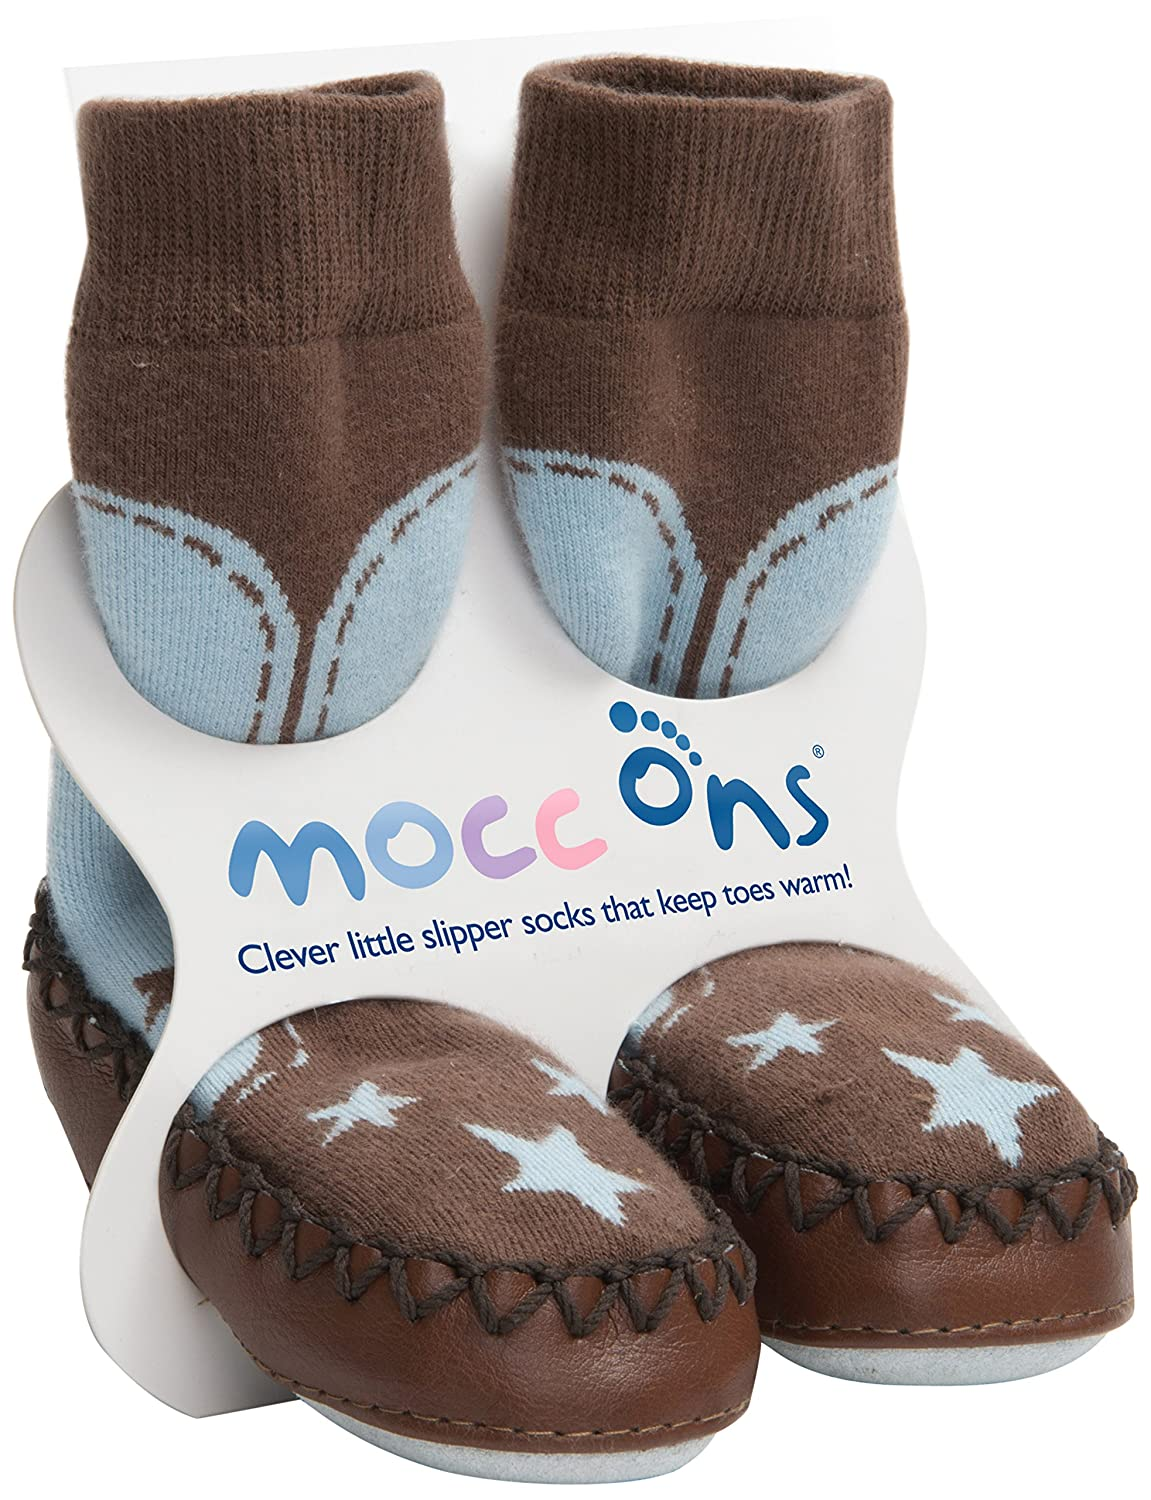 Mocc Ons Cute Moccasin Style Slipper Socks - 6-12 Months, Cowboy MOCCONCOWBOY6-12